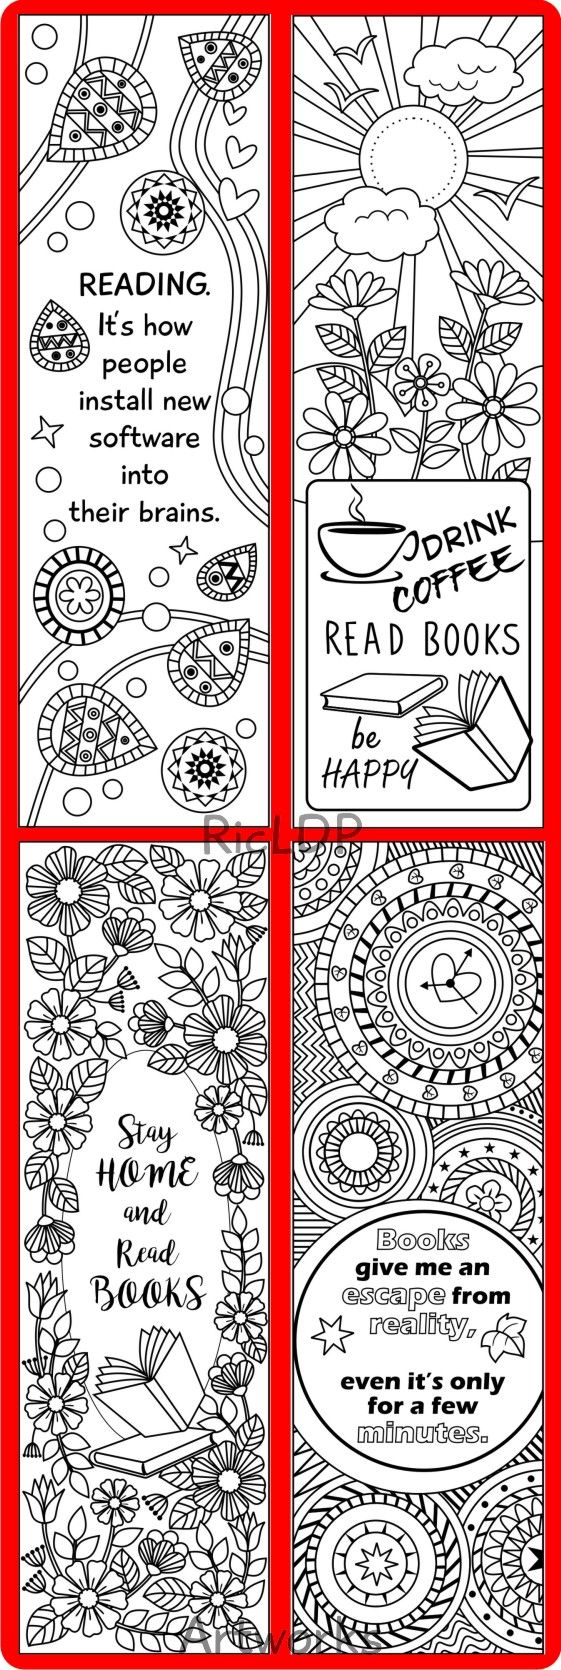 Religious bookmarks to color - Best 25 Printable Bookmarks Ideas On Pinterest Printable Book Marks Bookmarks And Free Printable Bookmarks